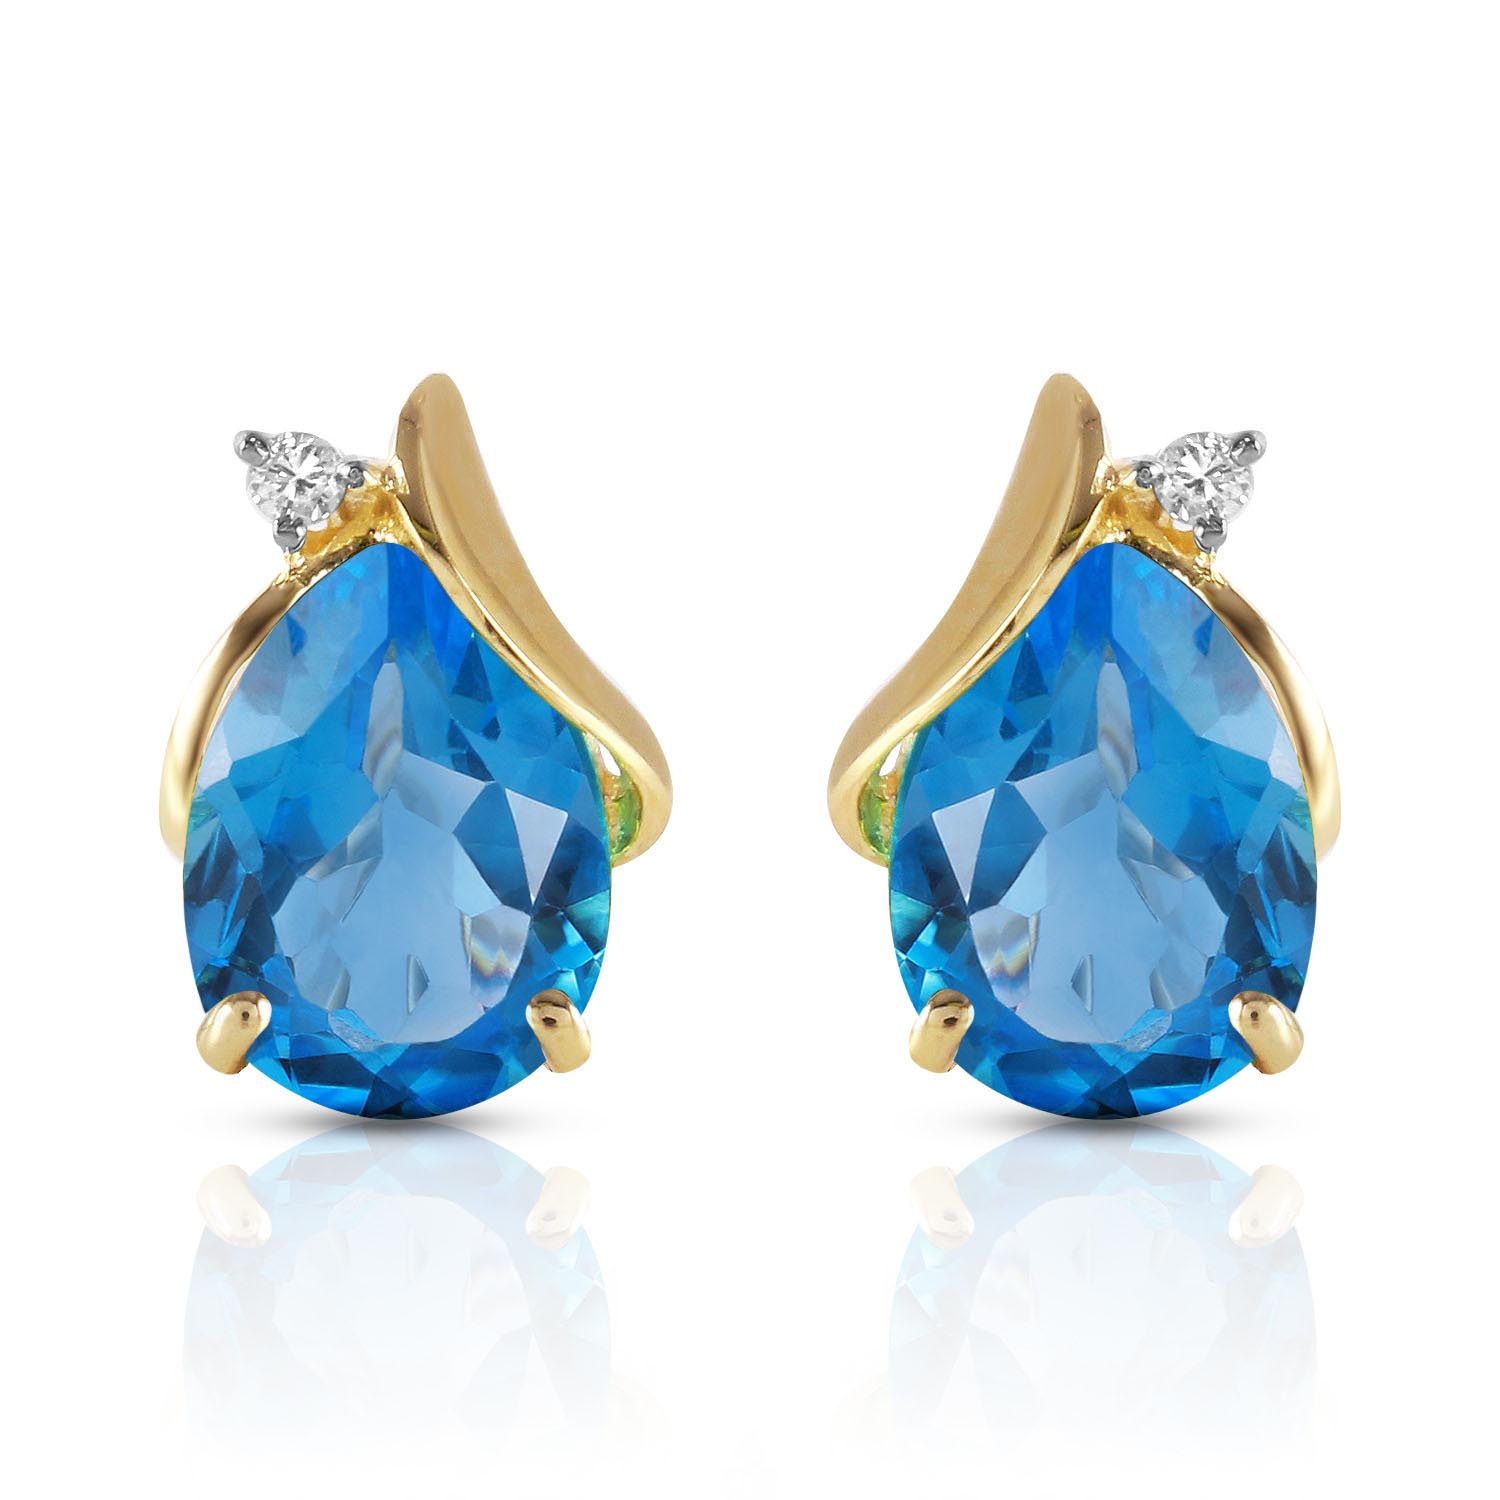 Blue Topaz and Diamond Stud Earrings 5.0ctw in 9ct Gold